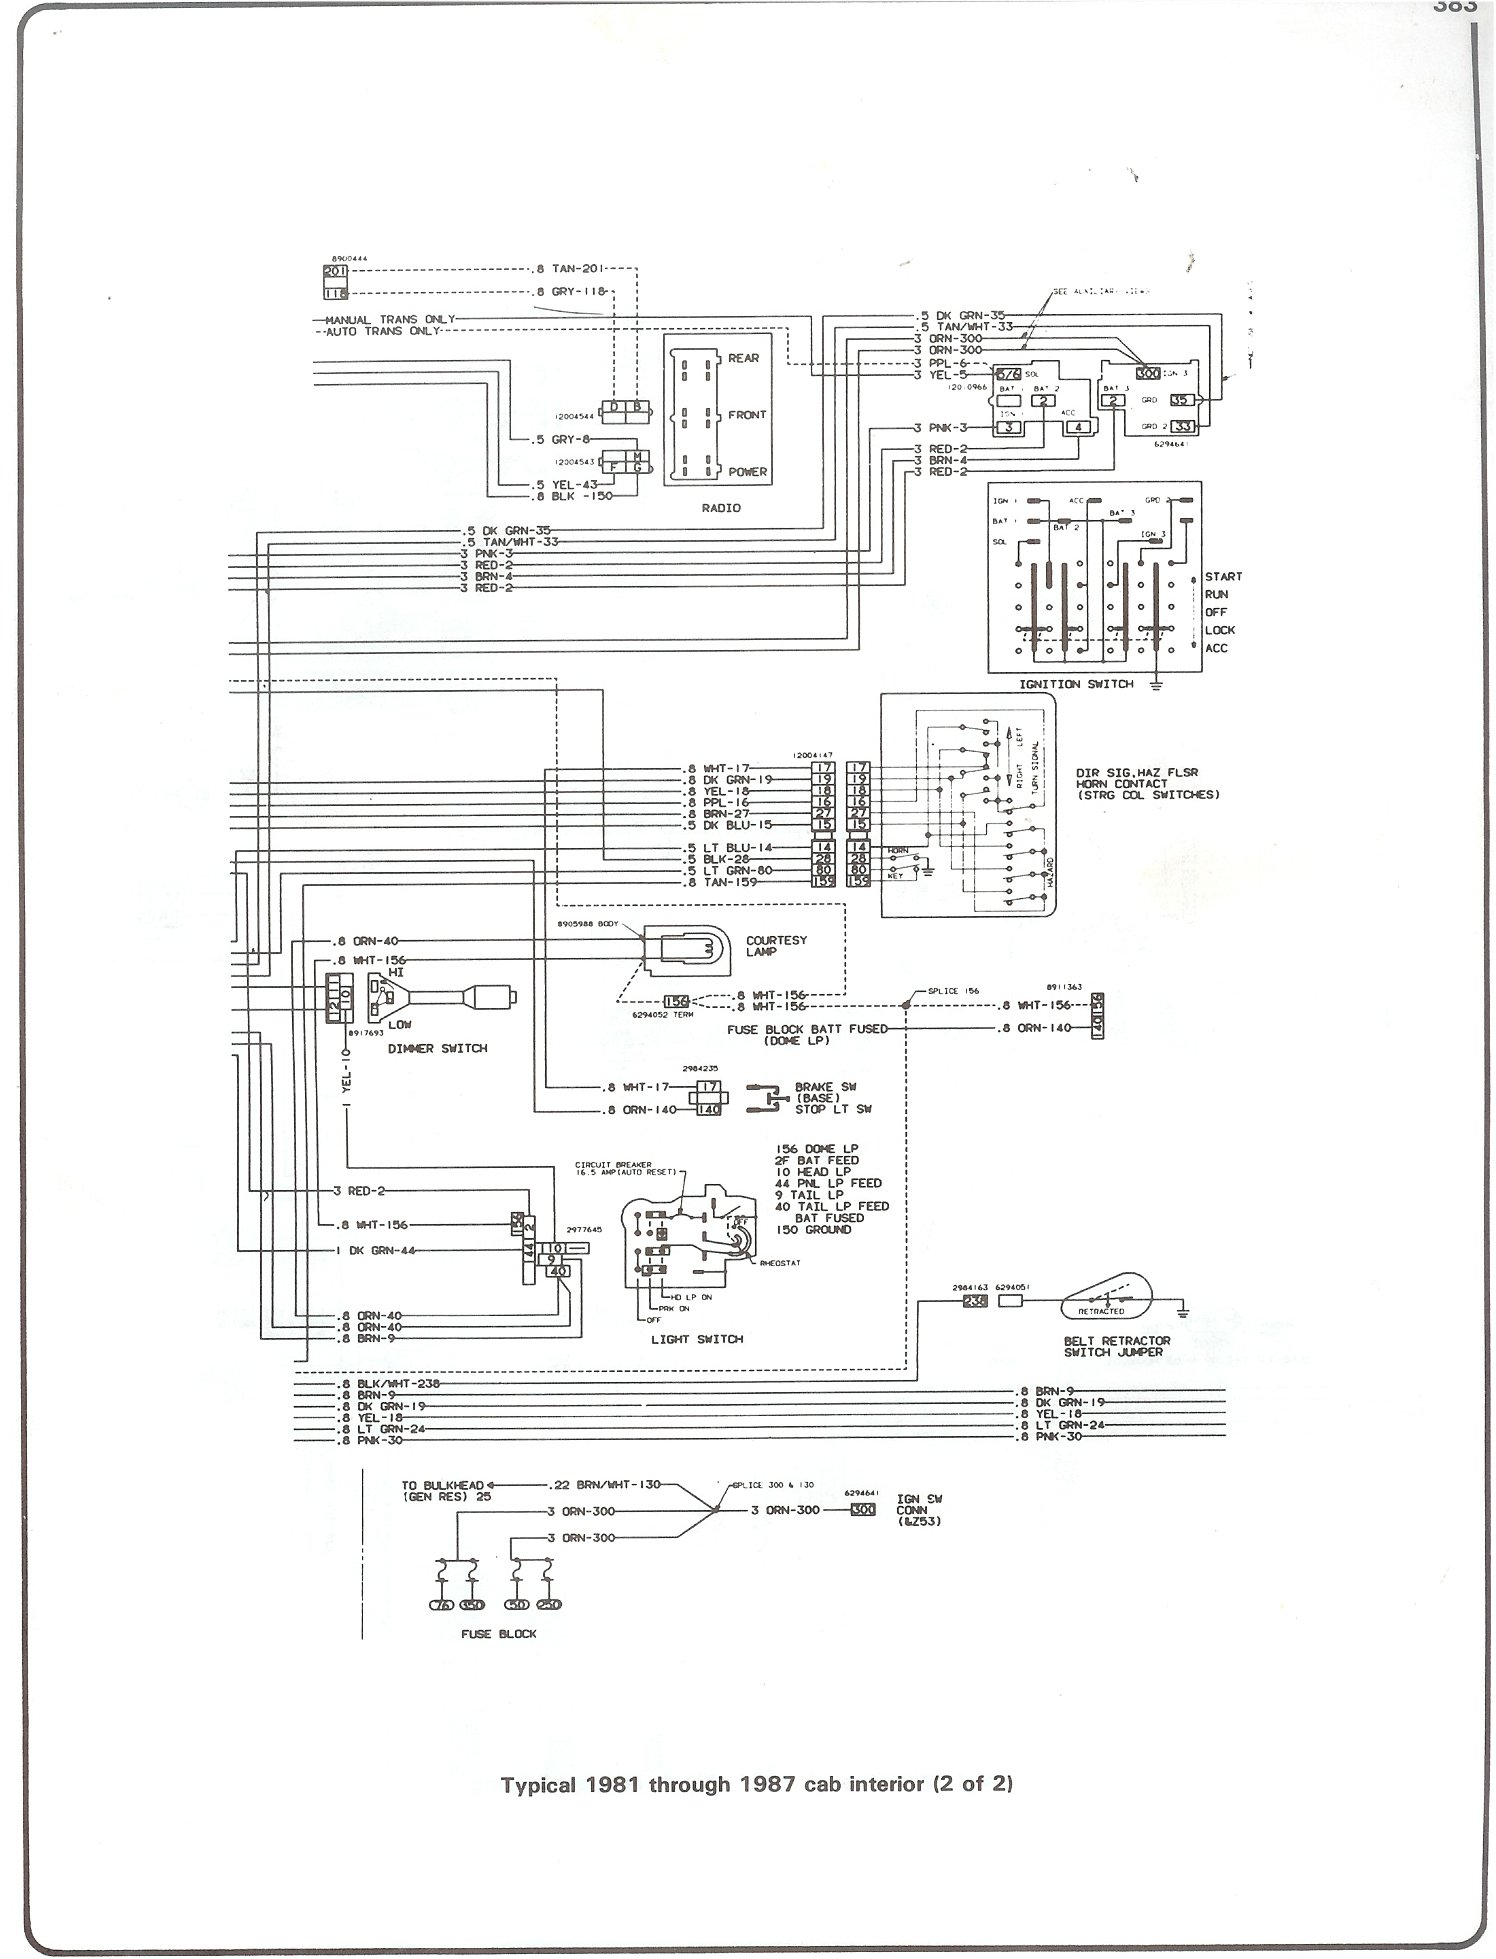 Wiring Diagram 83 Chevy Truck | Wiring Liry on gmc truck electrical wiring diagrams, 1984 chevy ac electric diagrams, gmc truck fuse diagrams, 1984 gmc heater wiring diagram, 2010 gmc light diagrams, 1984 gmc wiring diagram light, 2001 gmc sierra wiring diagrams,